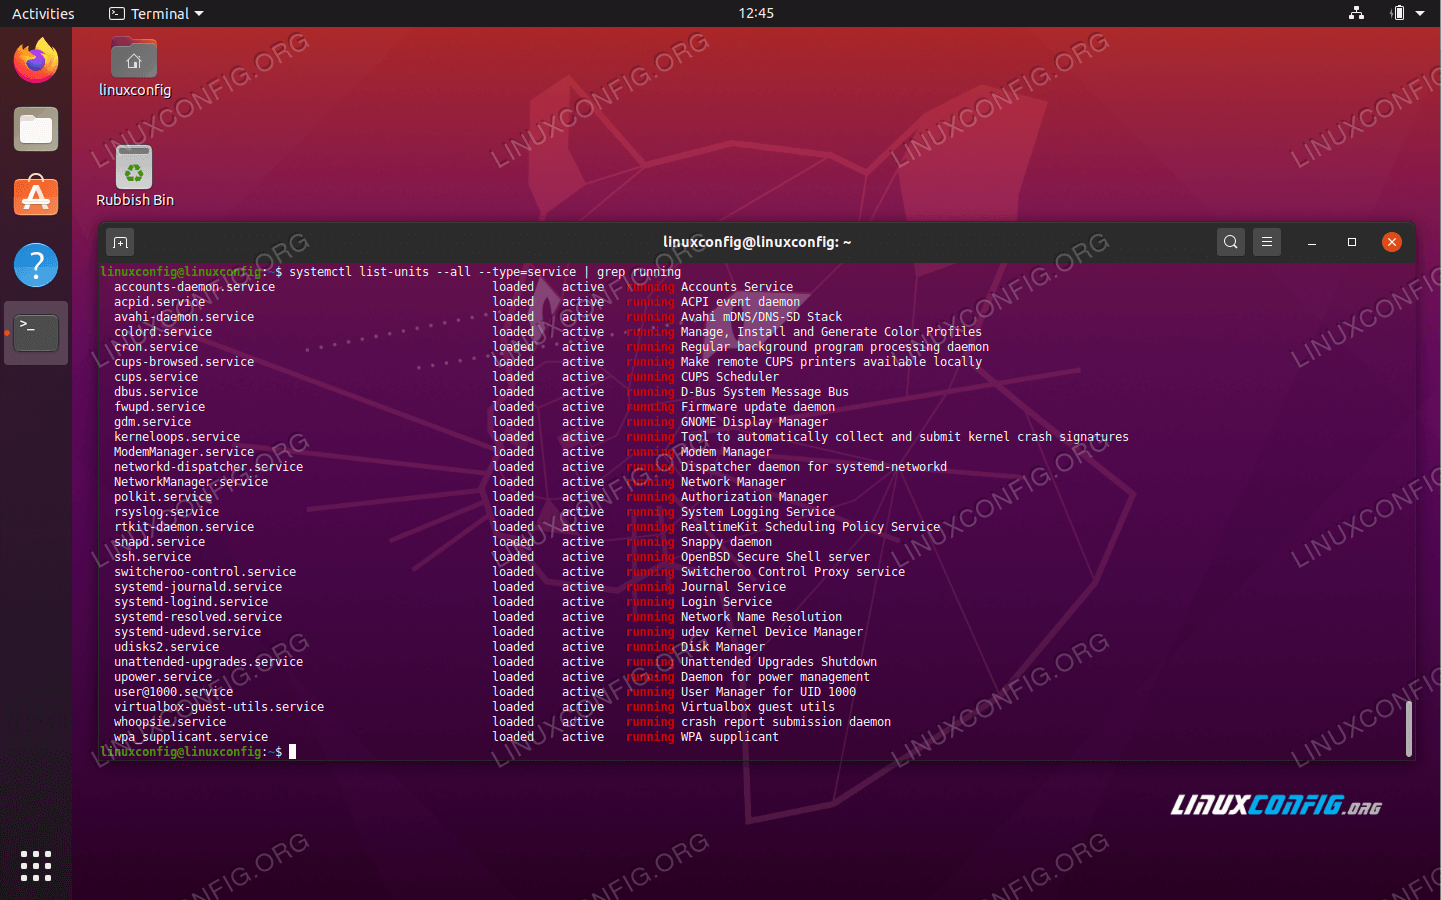 Running services list on Ubuntu 20.04